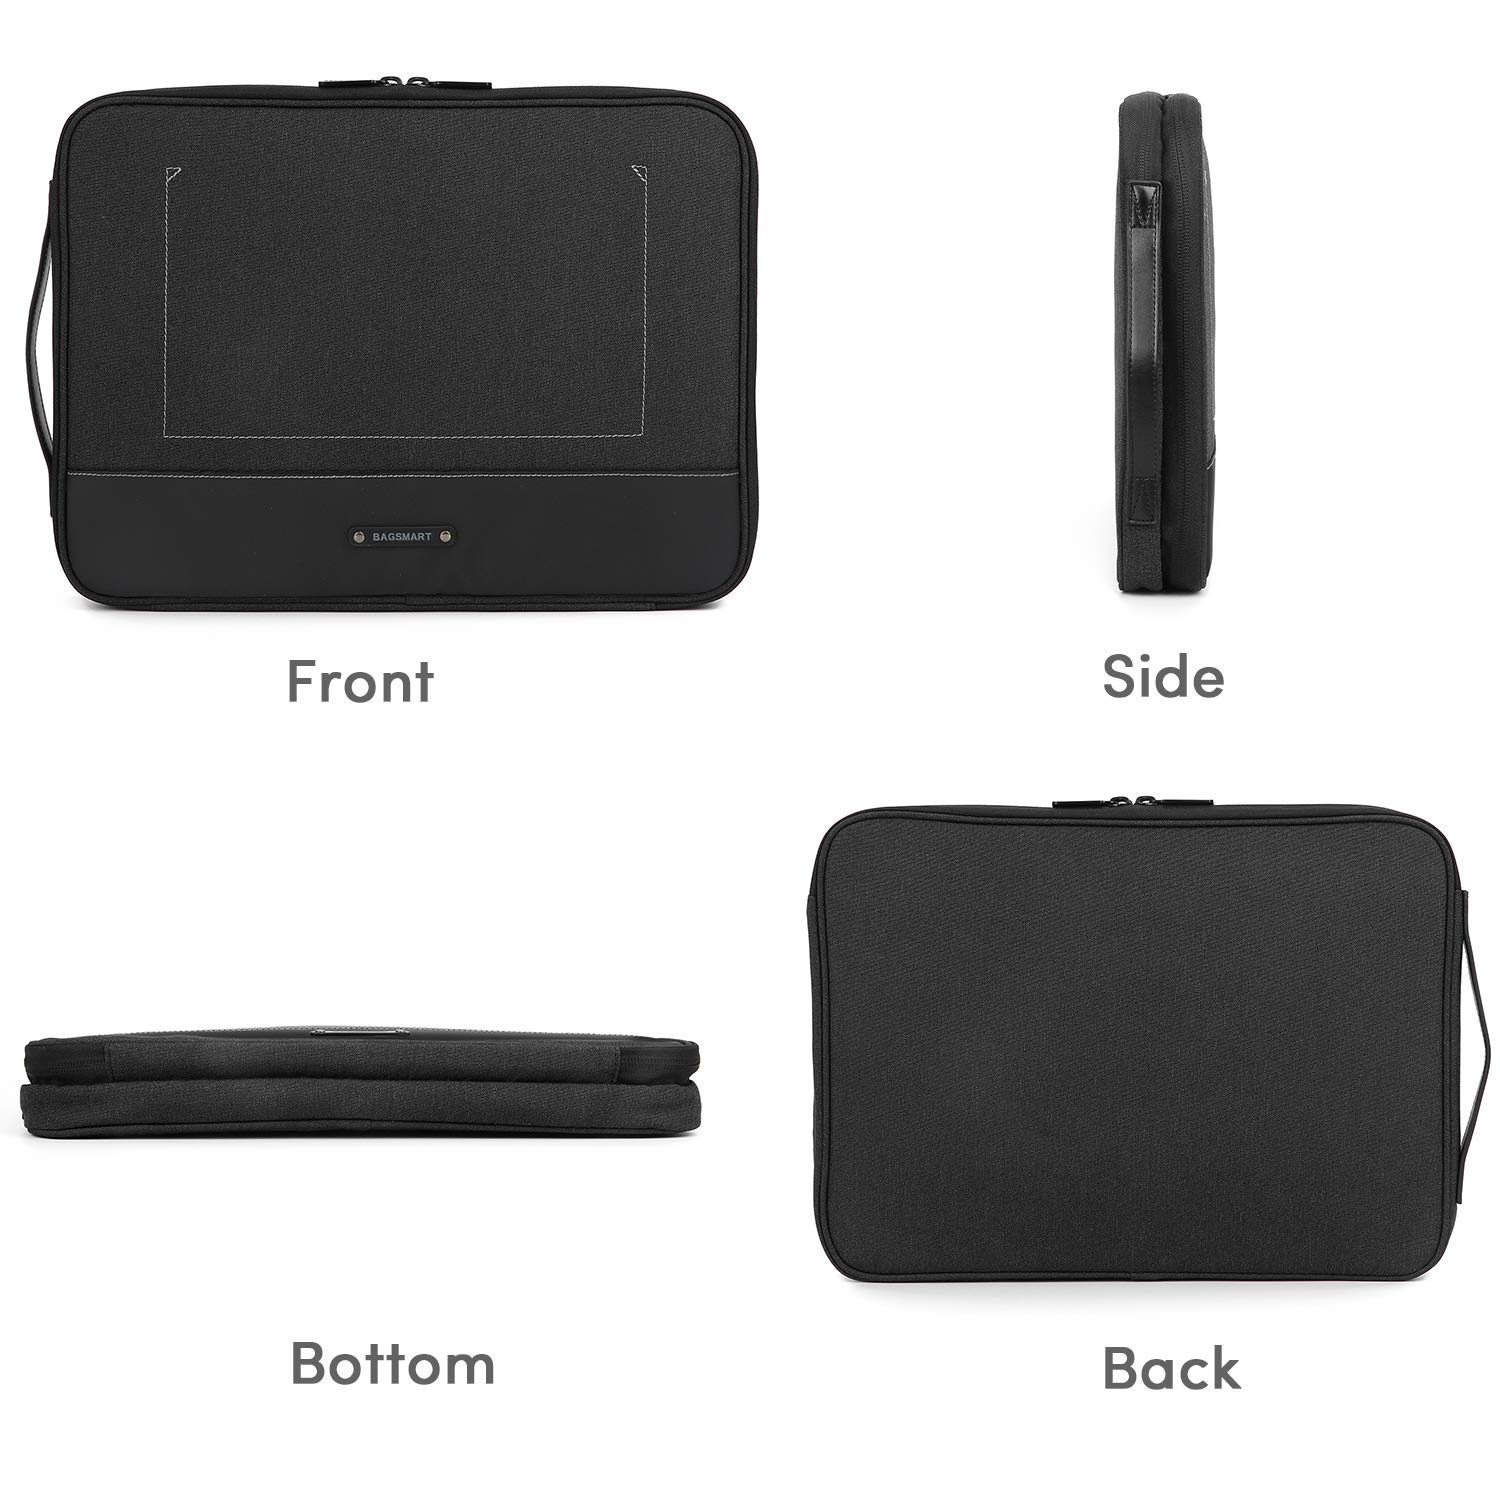 Black Hard Drives Adapter BAGSMART Travel Organizer Electronics Laptop Accessories Bag with 15 inch MacBook Pro Compartment 12.9 inch iPad Pro for Cable